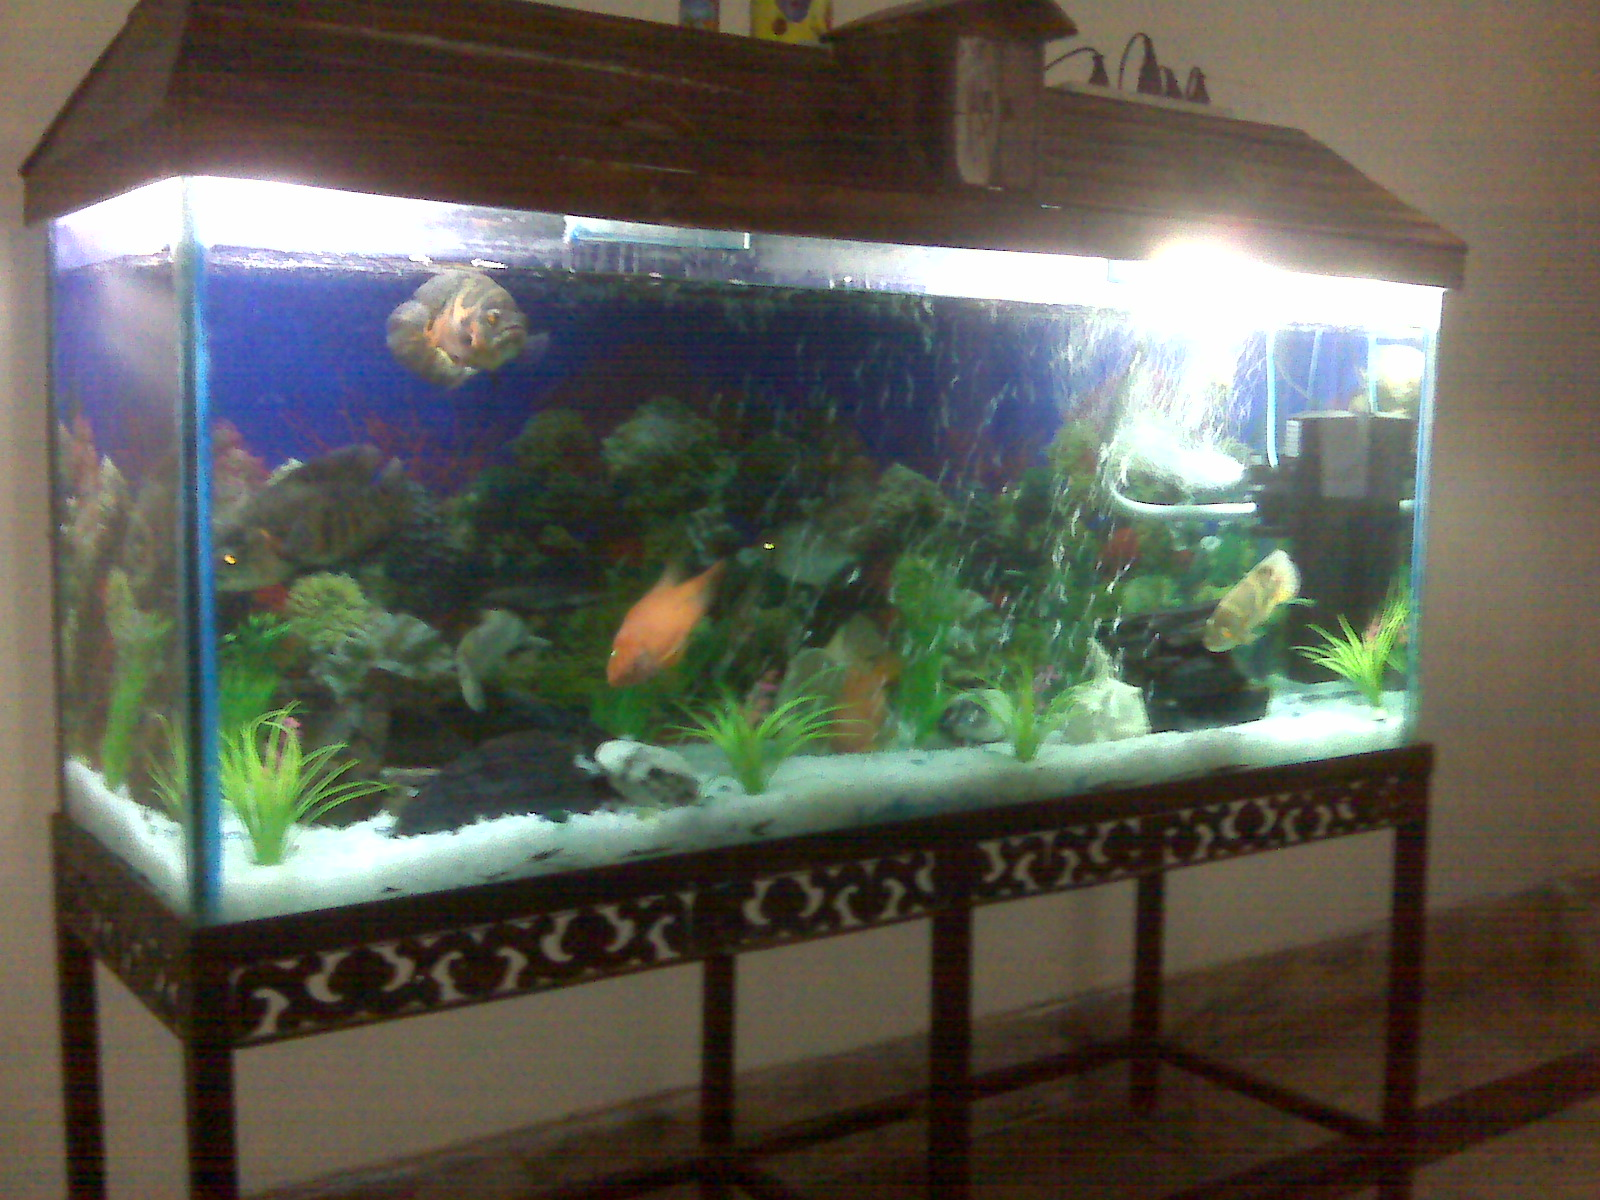 Fish aquarium for sale in karachi - Feet Aquarium For Sale At A Very Genuine Price